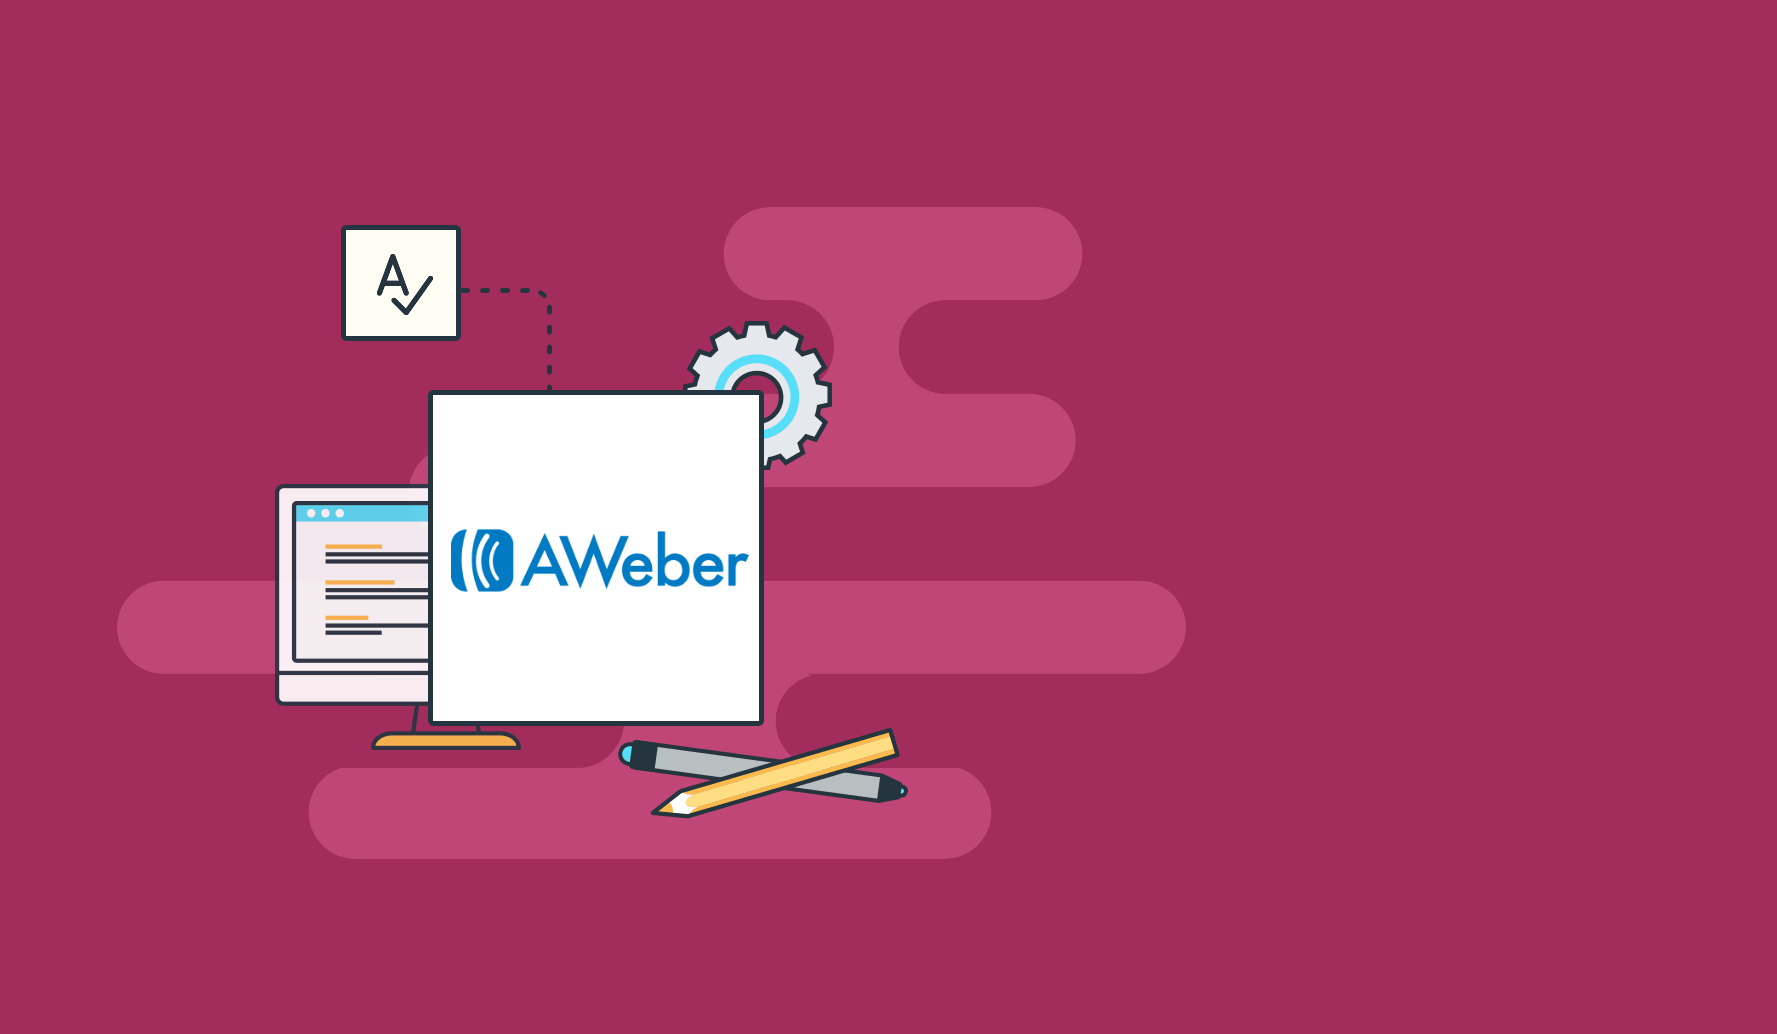 20 Percent Off Voucher Code Aweber Email Marketing March 2020